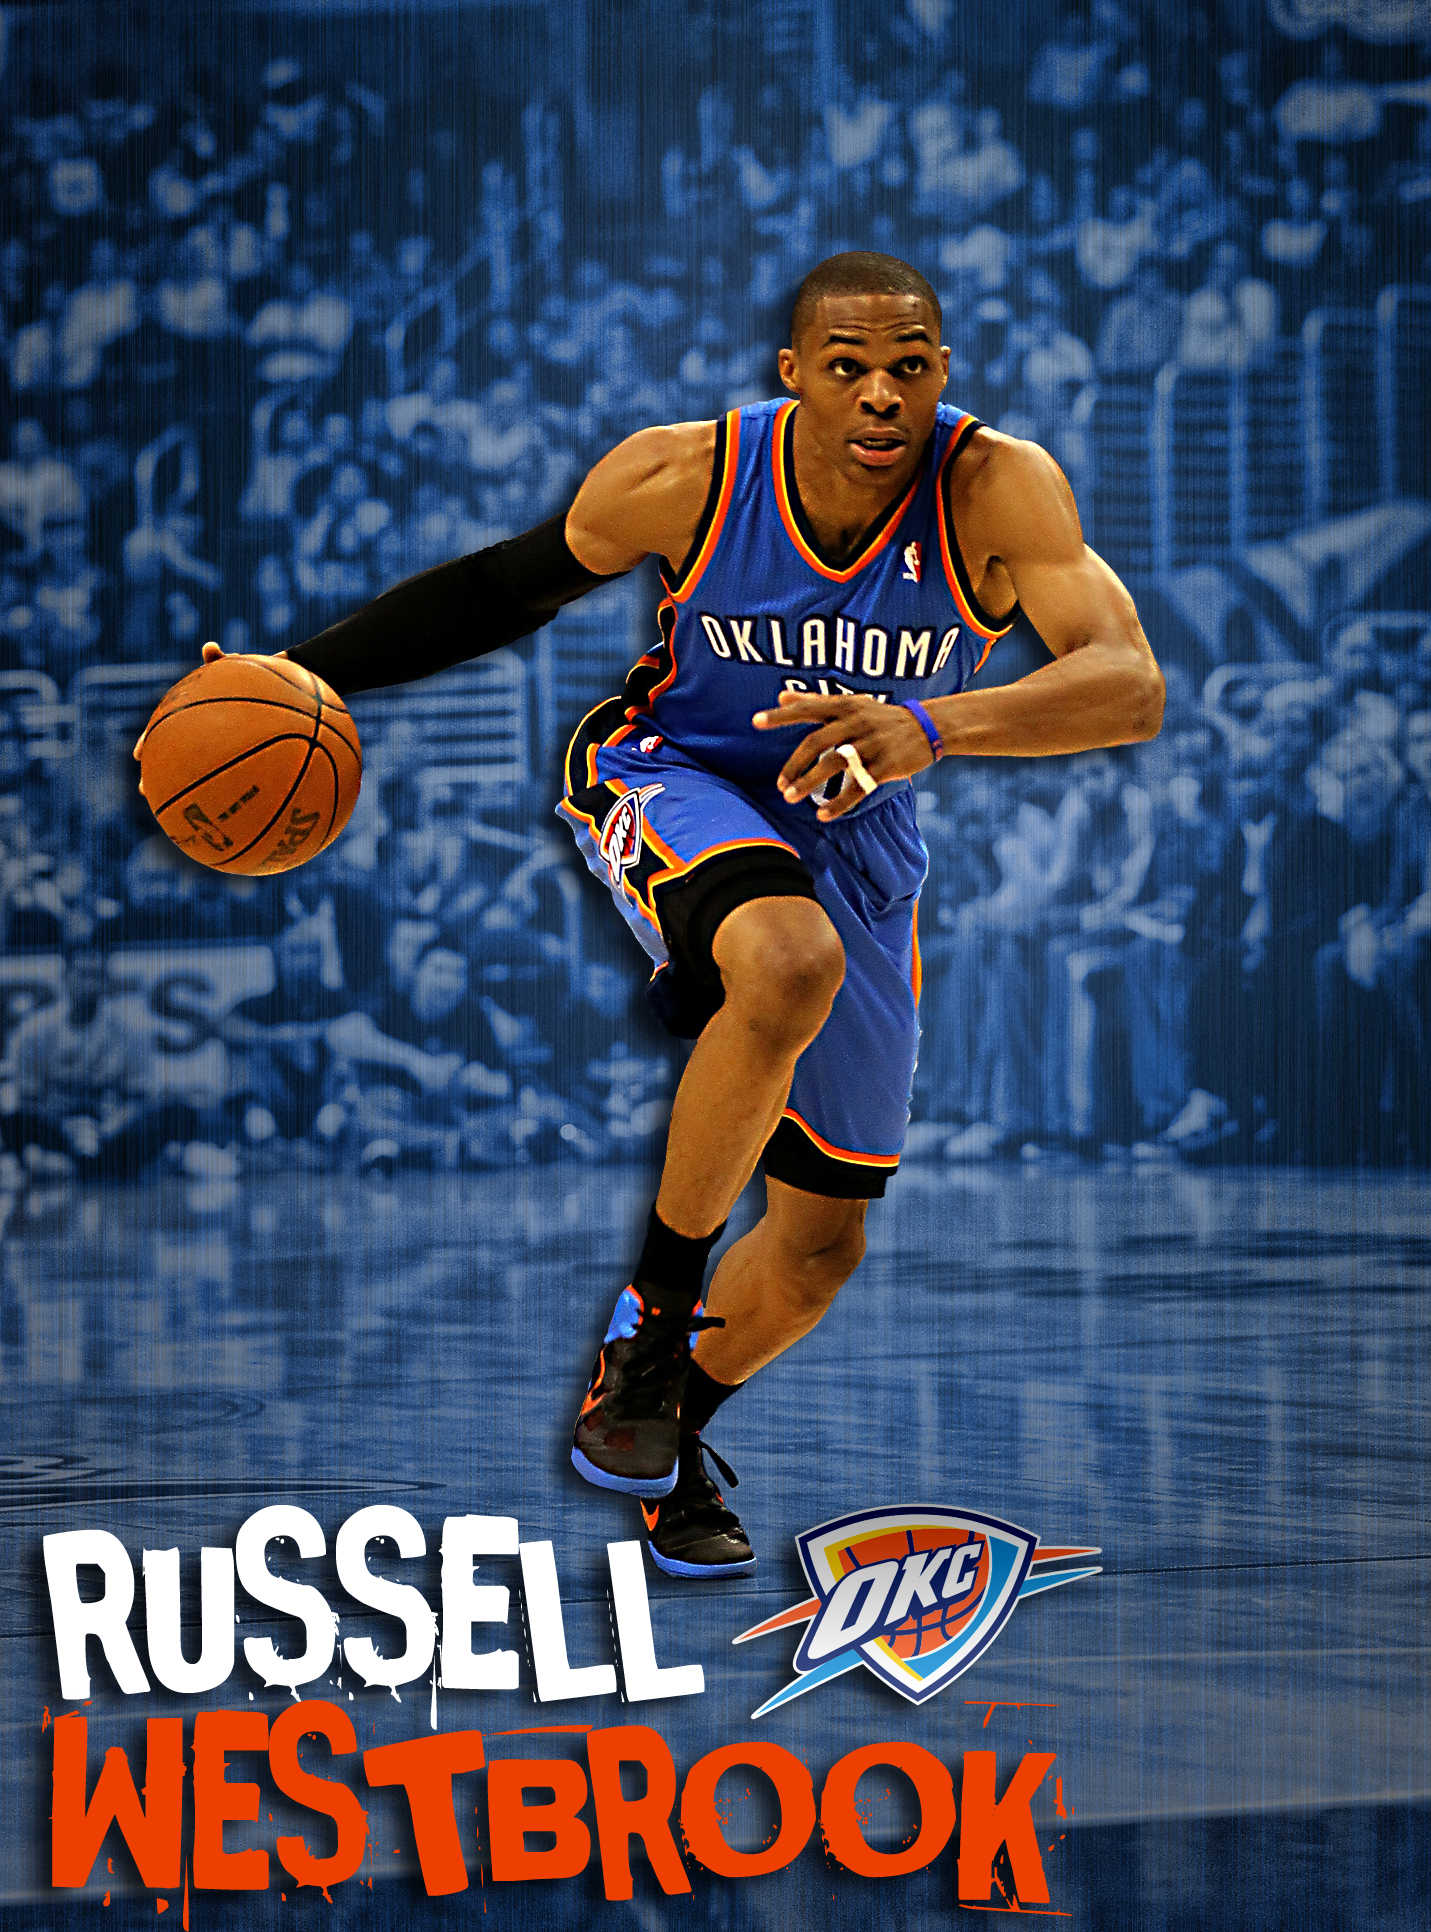 Iphone Russell Westbrook Wallpaper | Full HD Pictures